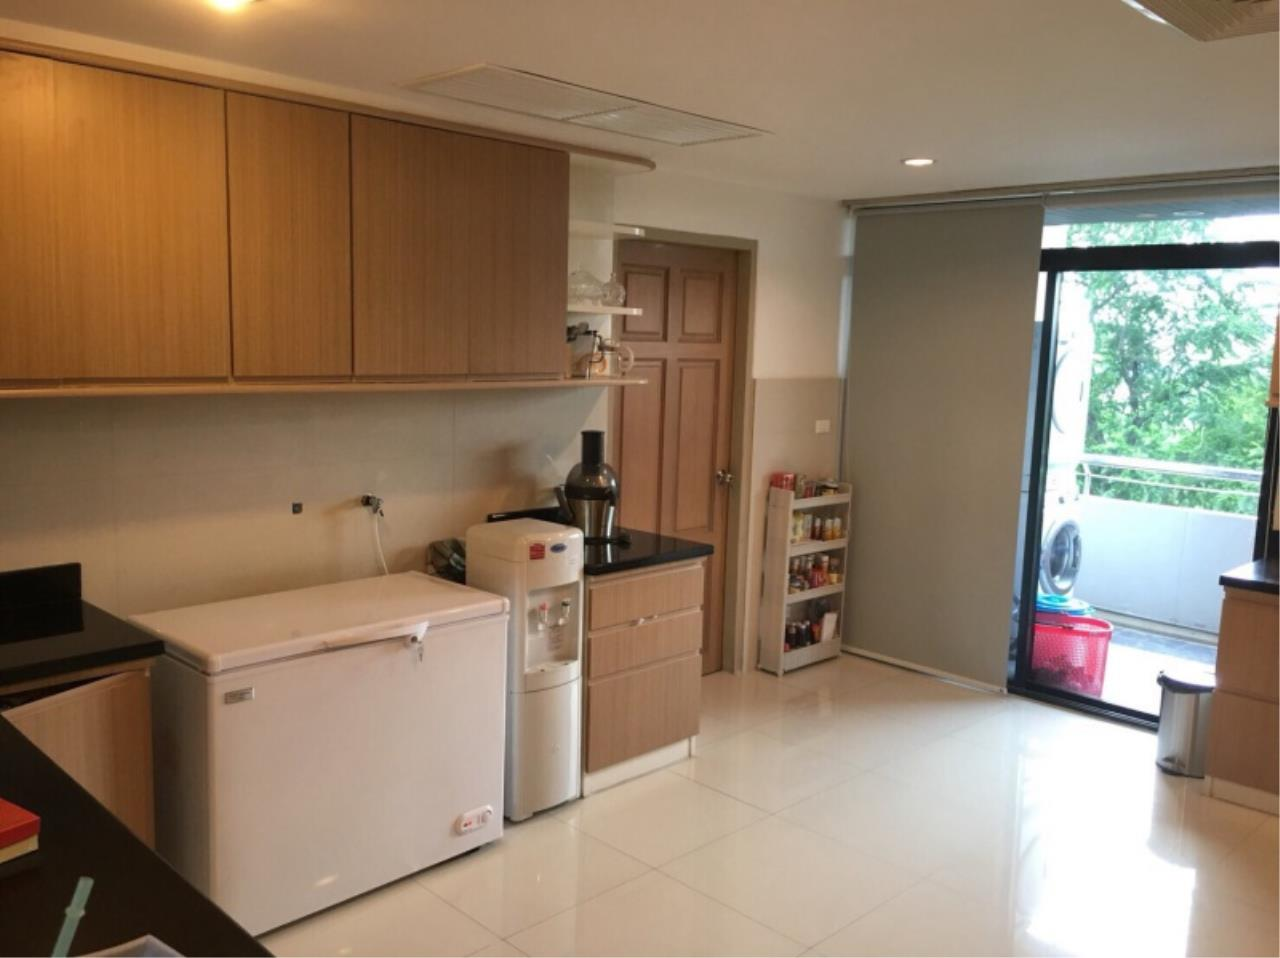 Century21 Skylux Agency's Lakeshore West Condominium / Condo For Sale / 4 Bedroom / 414.94 SQM / Pakkret / Bangkok 6